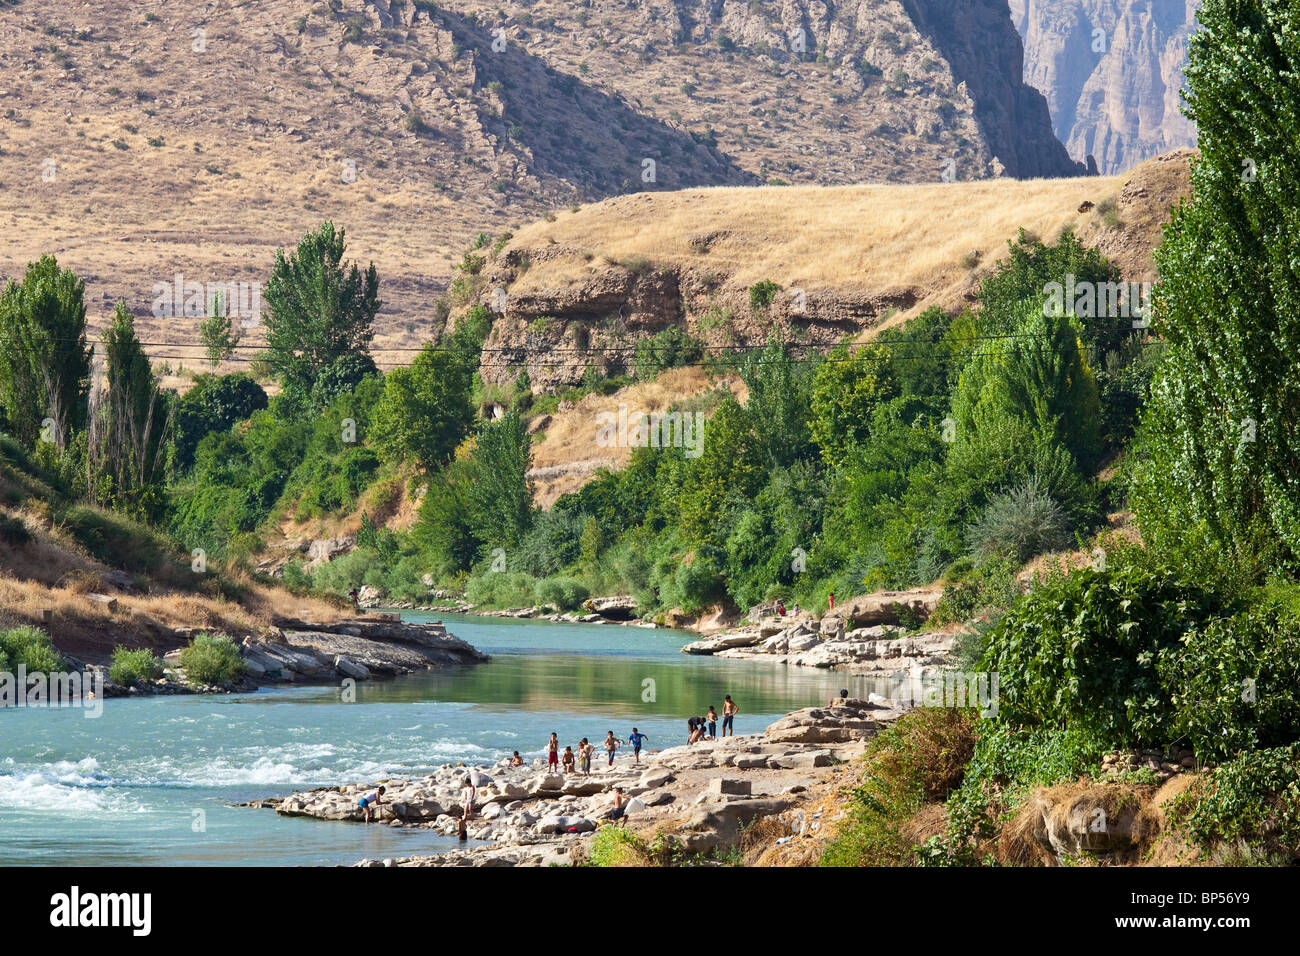 Scenery near Dohuk, Kurdistan, Iraq - Stock Image